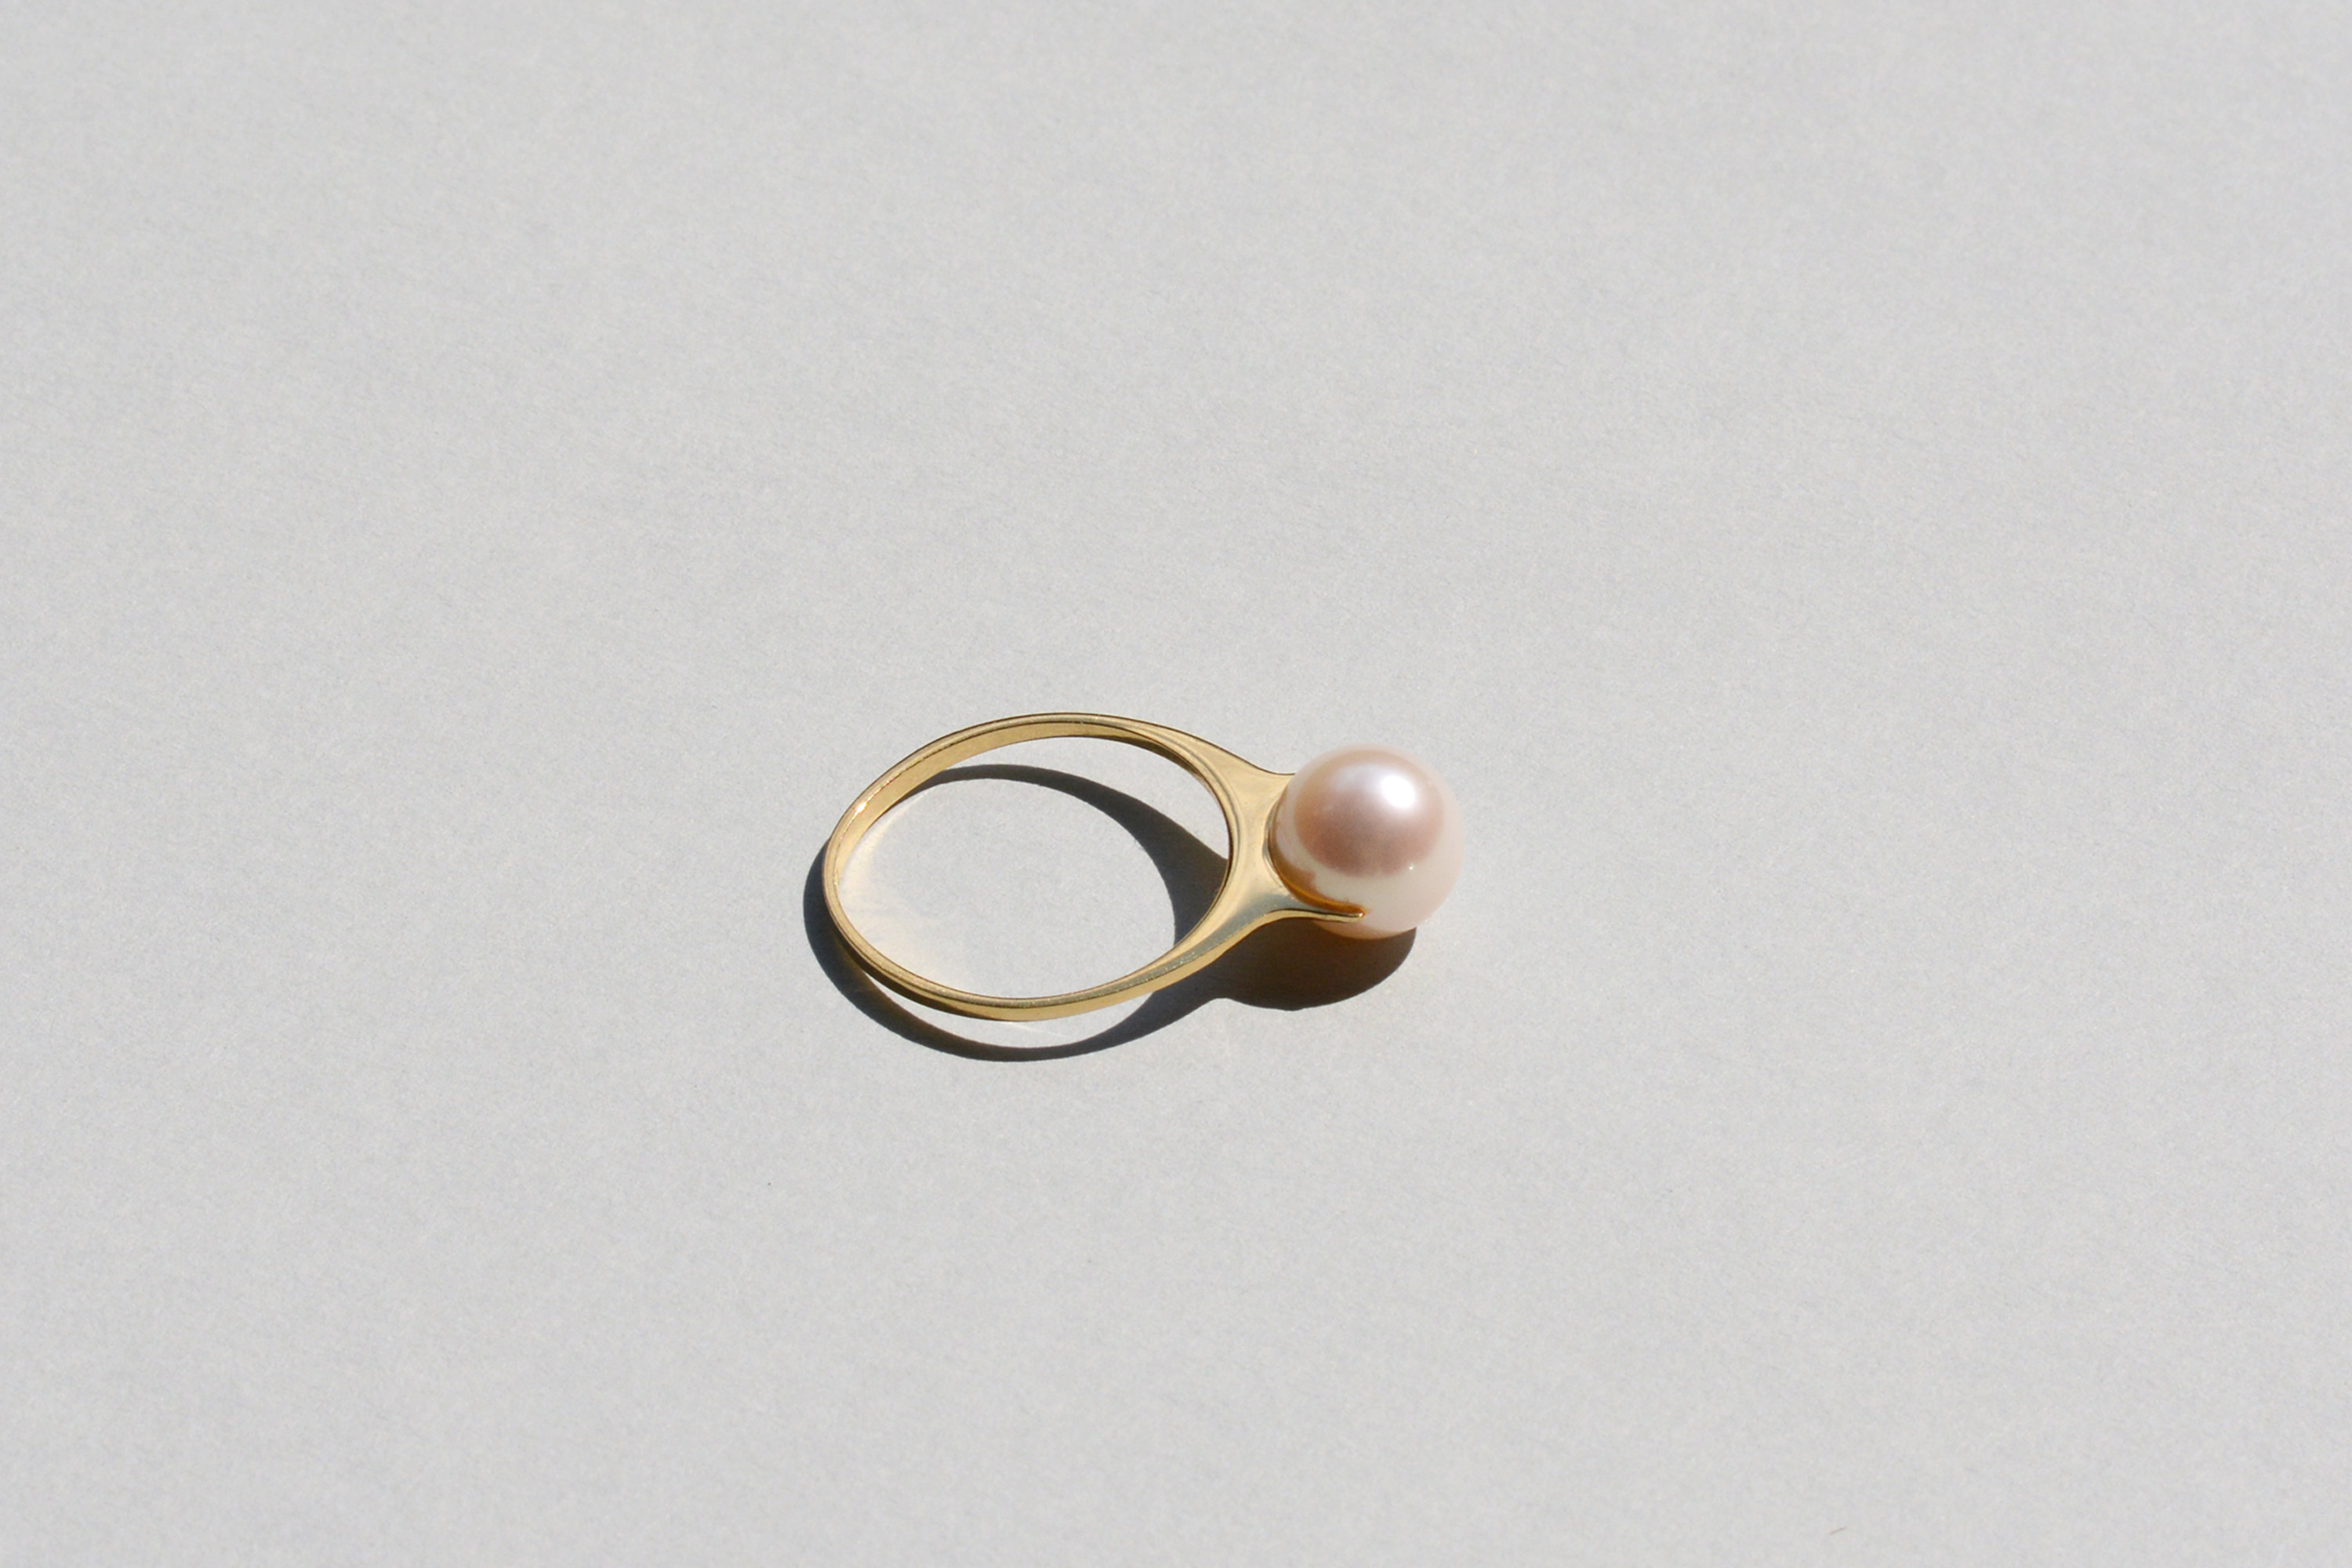 wedding ring print models printable pearl rings model cgtrader stl jewelry